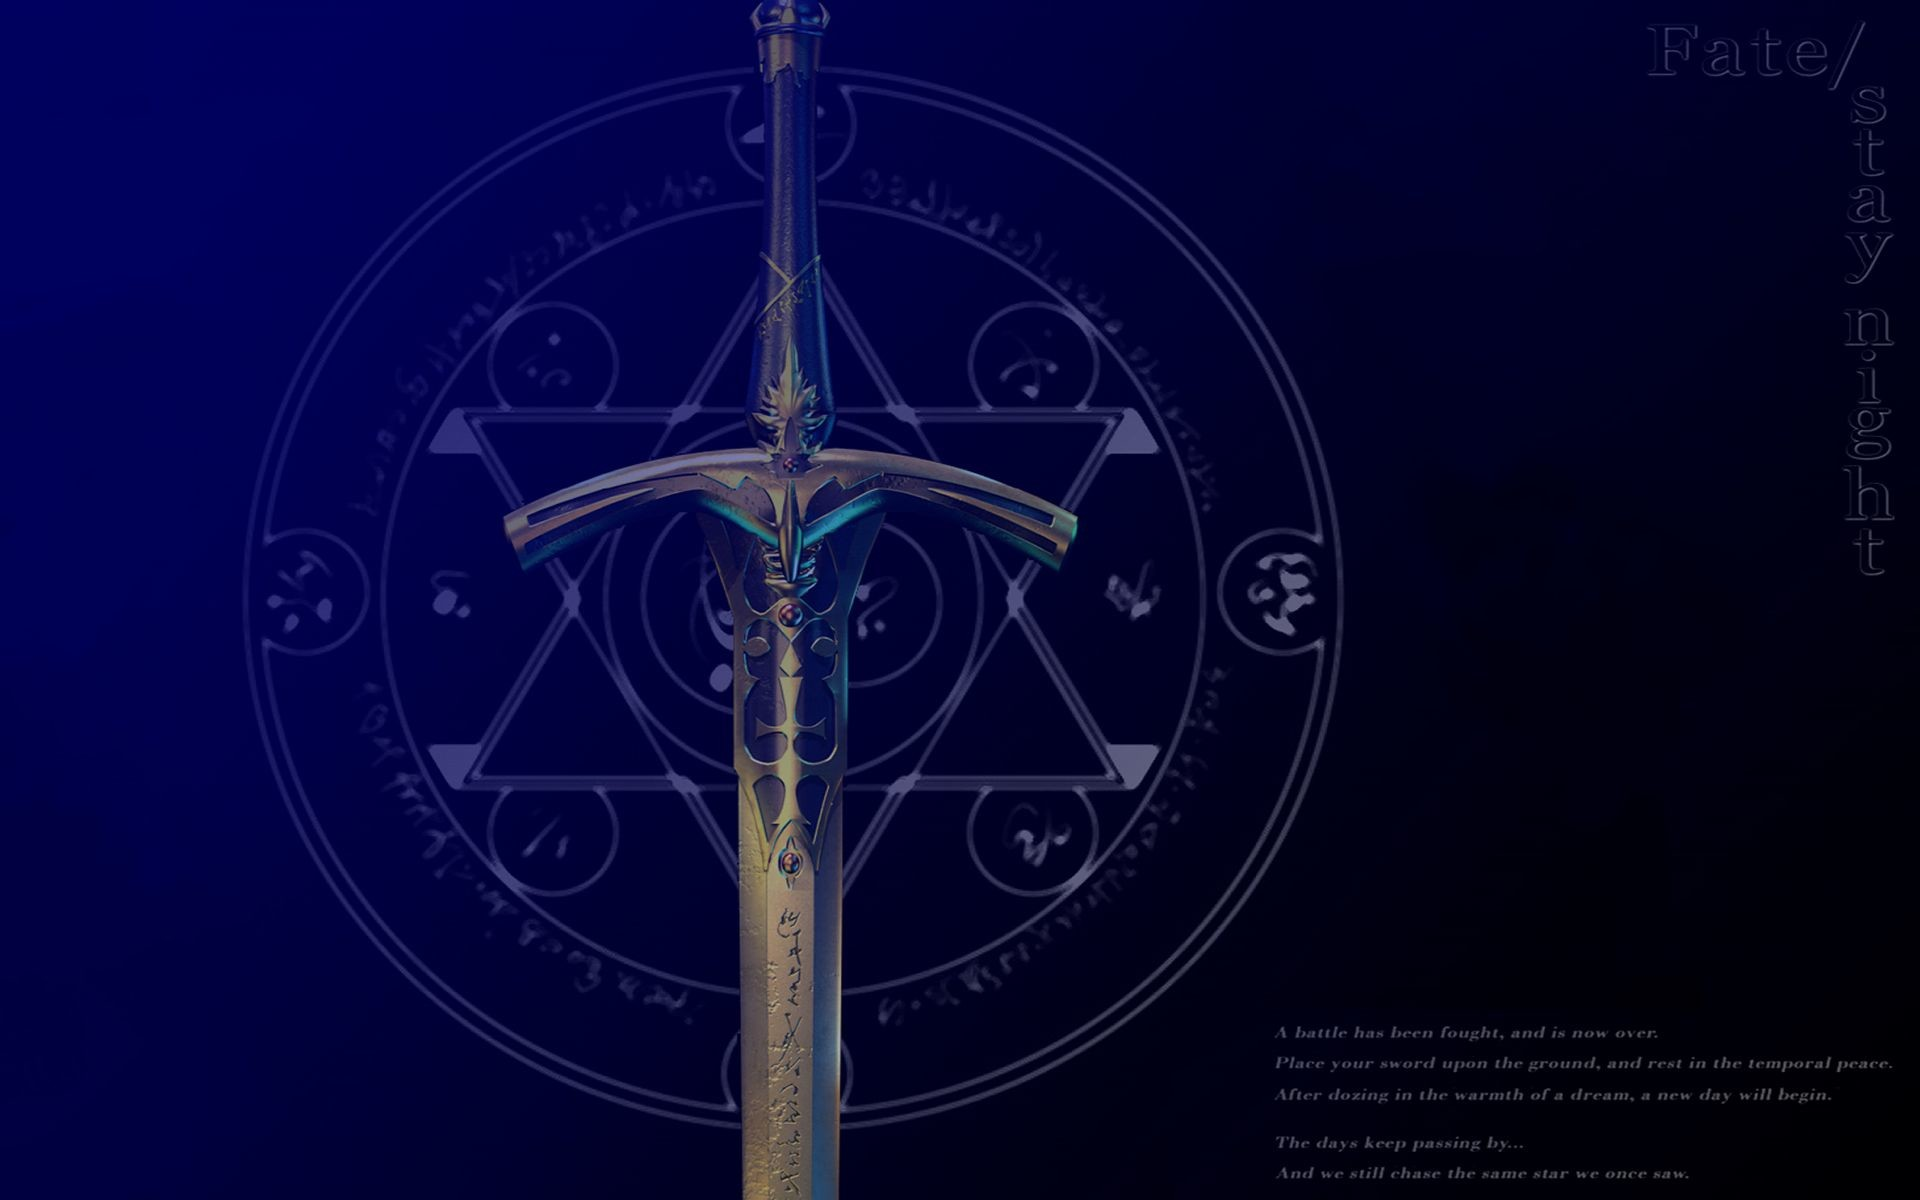 1201 Fate/Stay Night HD Wallpapers | Backgrounds – Wallpaper Abyss – Page 13